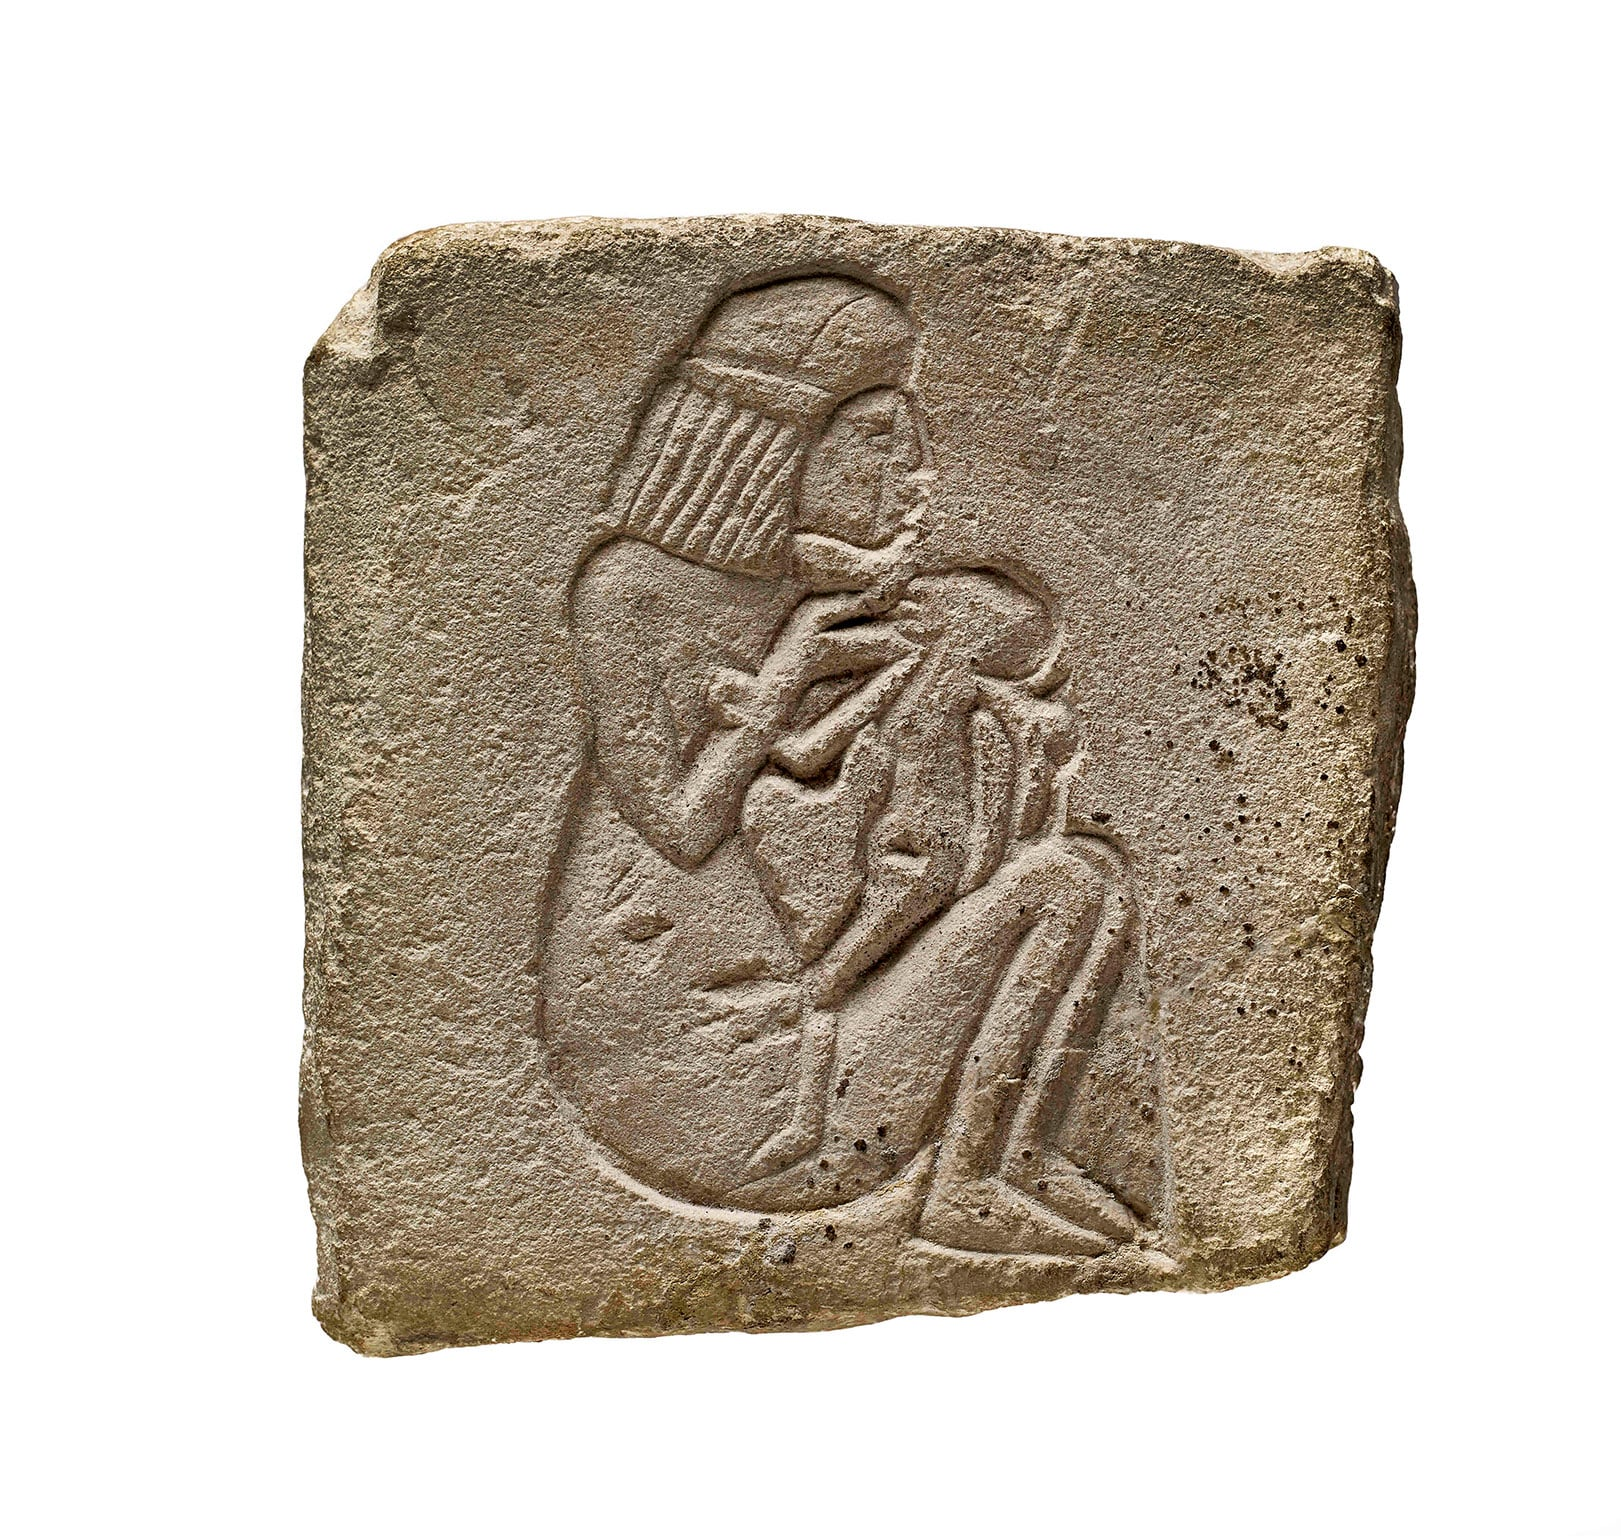 Limestone stele decorated with a representation of a woman suckling a child. 18th Dynasty